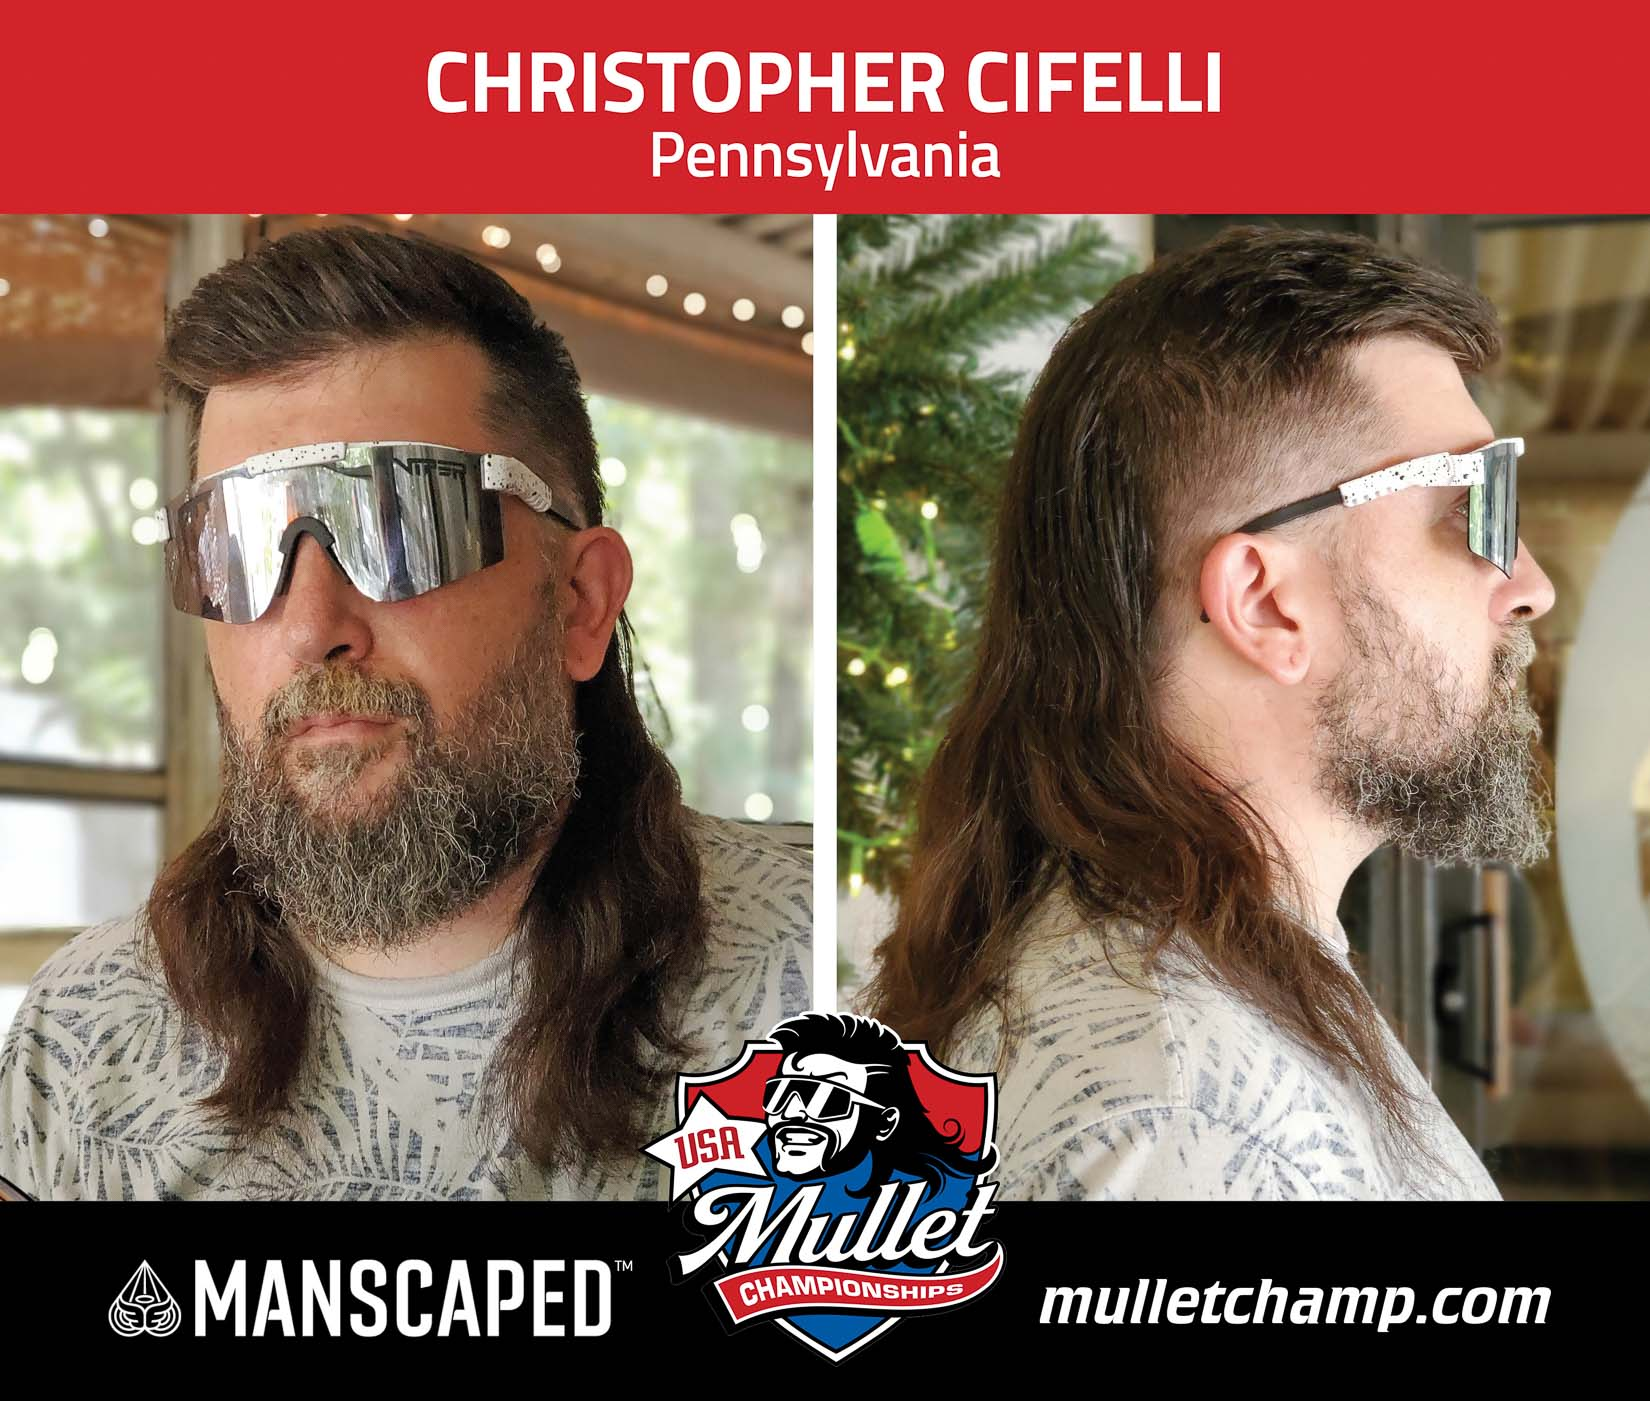 Mullet-Champ-USA-Mens-Open-Division-2021-Christopher-Cifelli